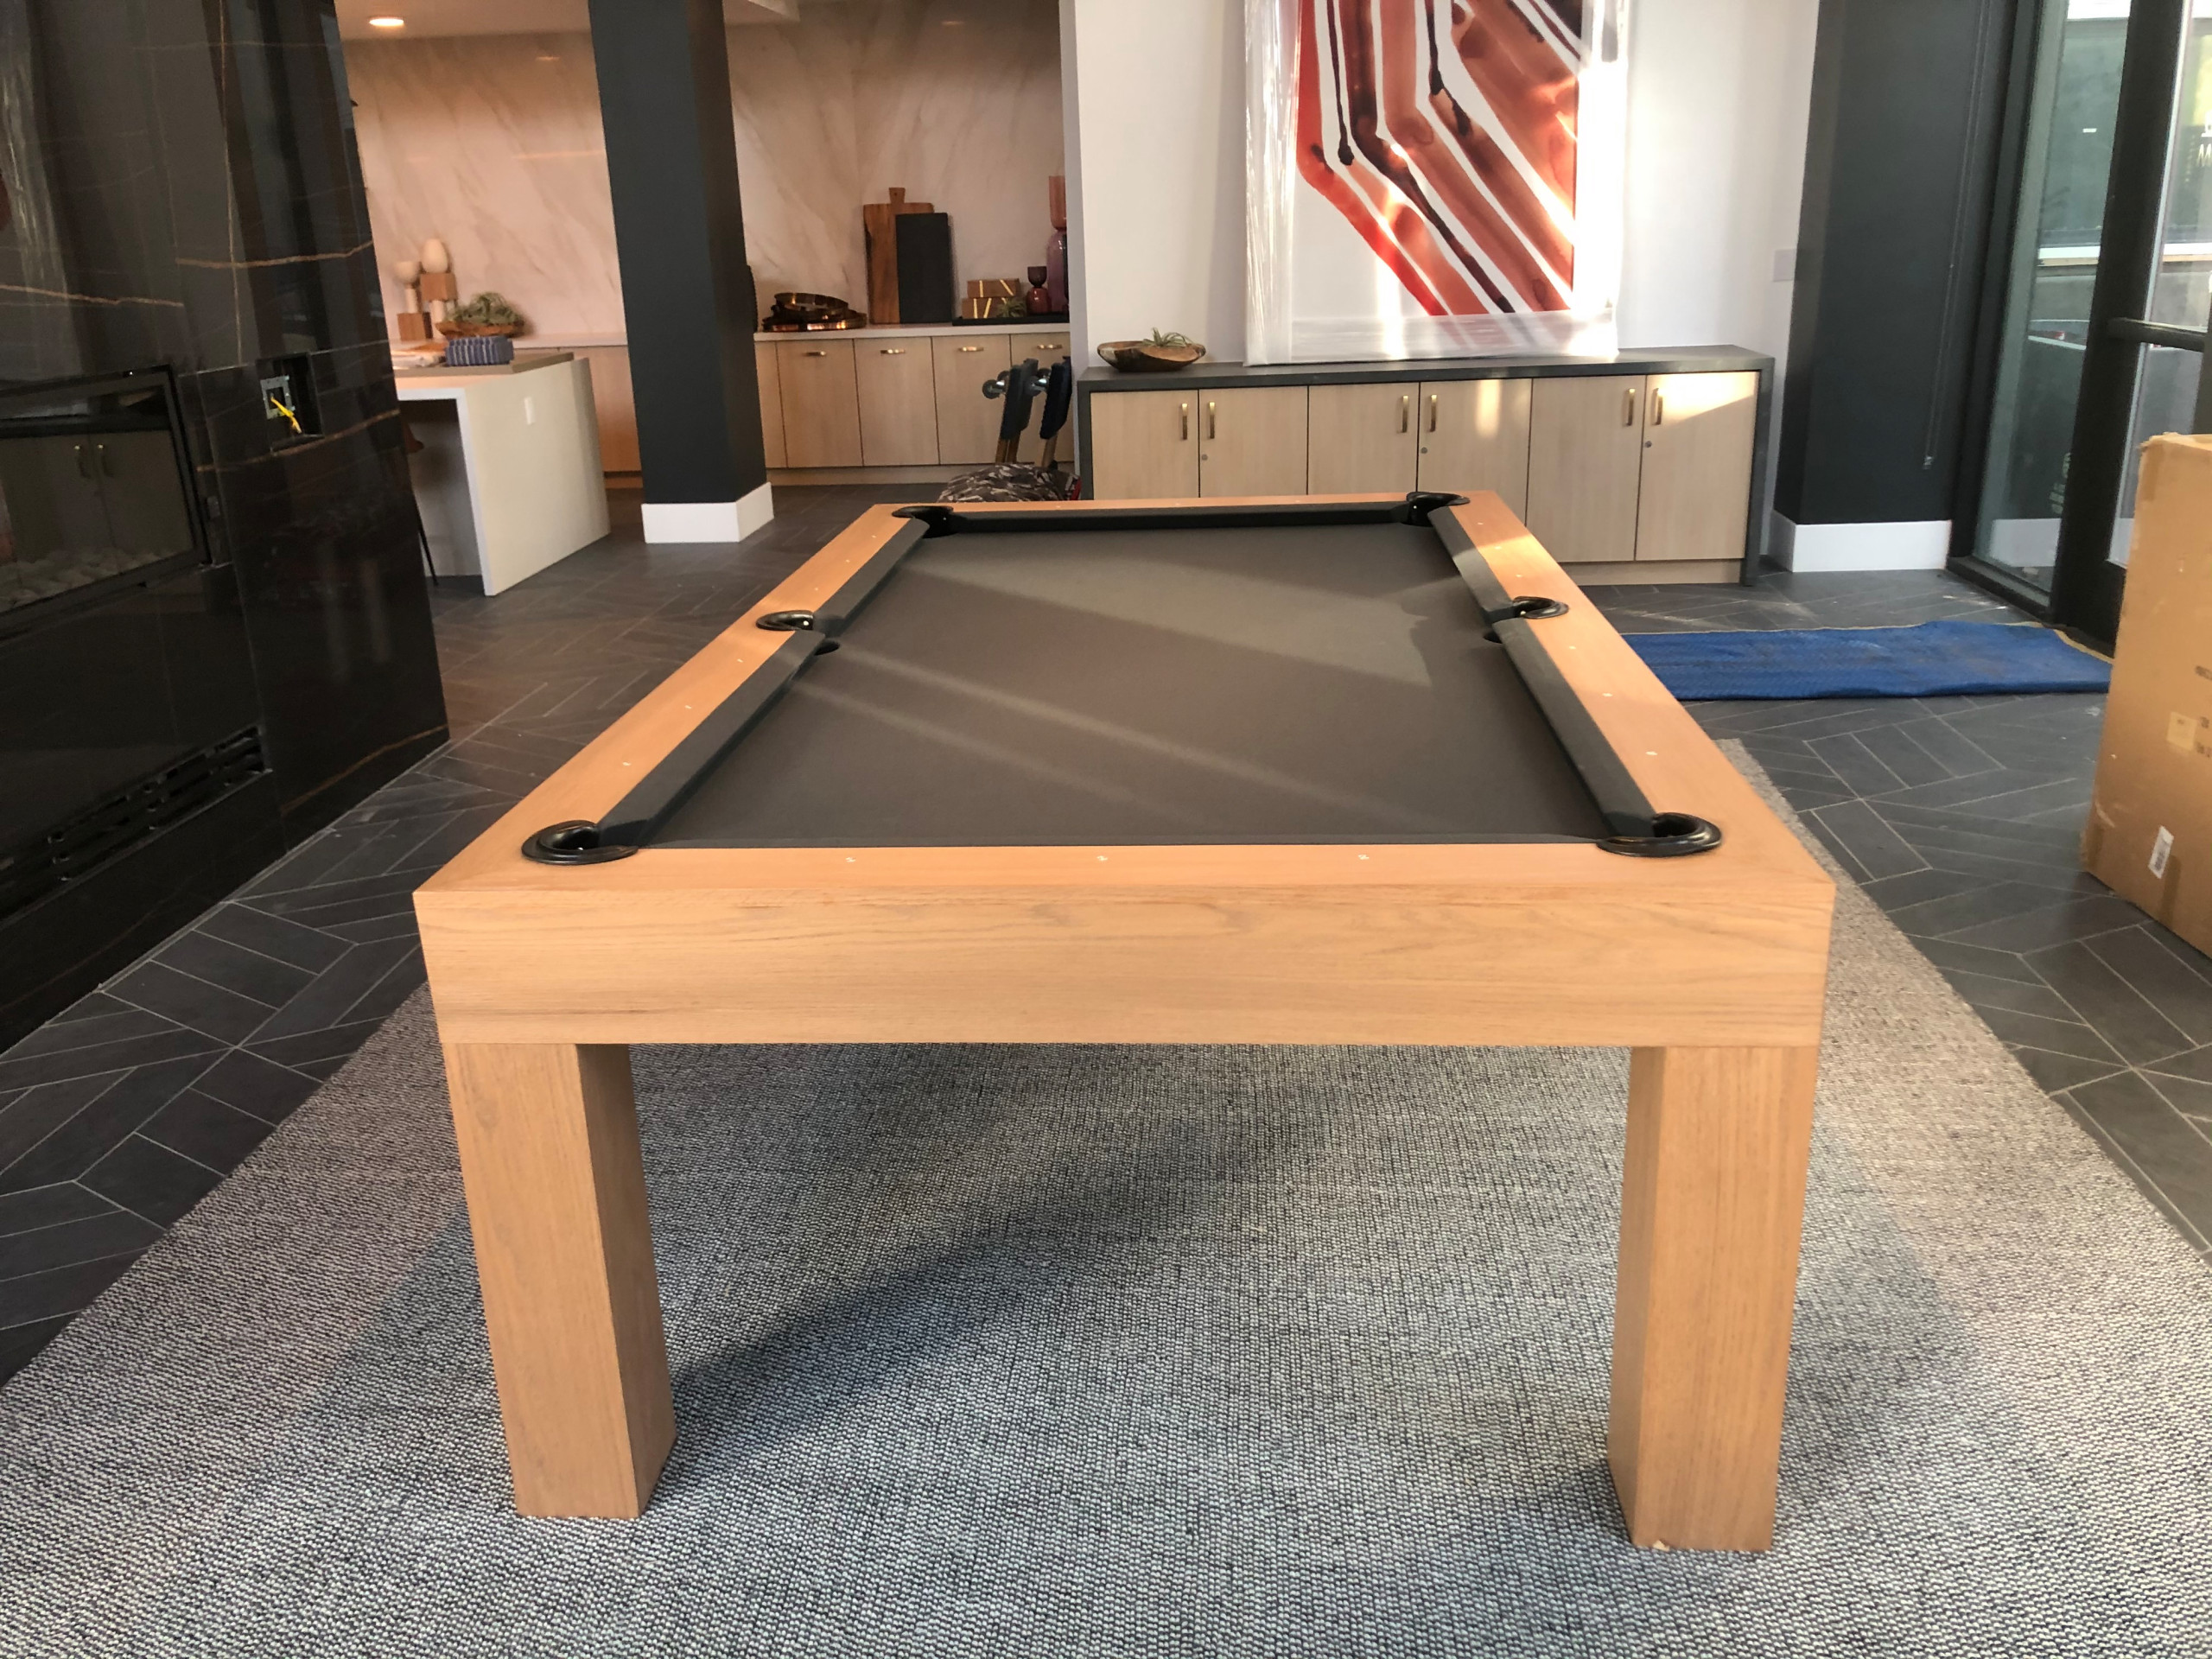 Modern pool table for a game room in an upscale apartment complex